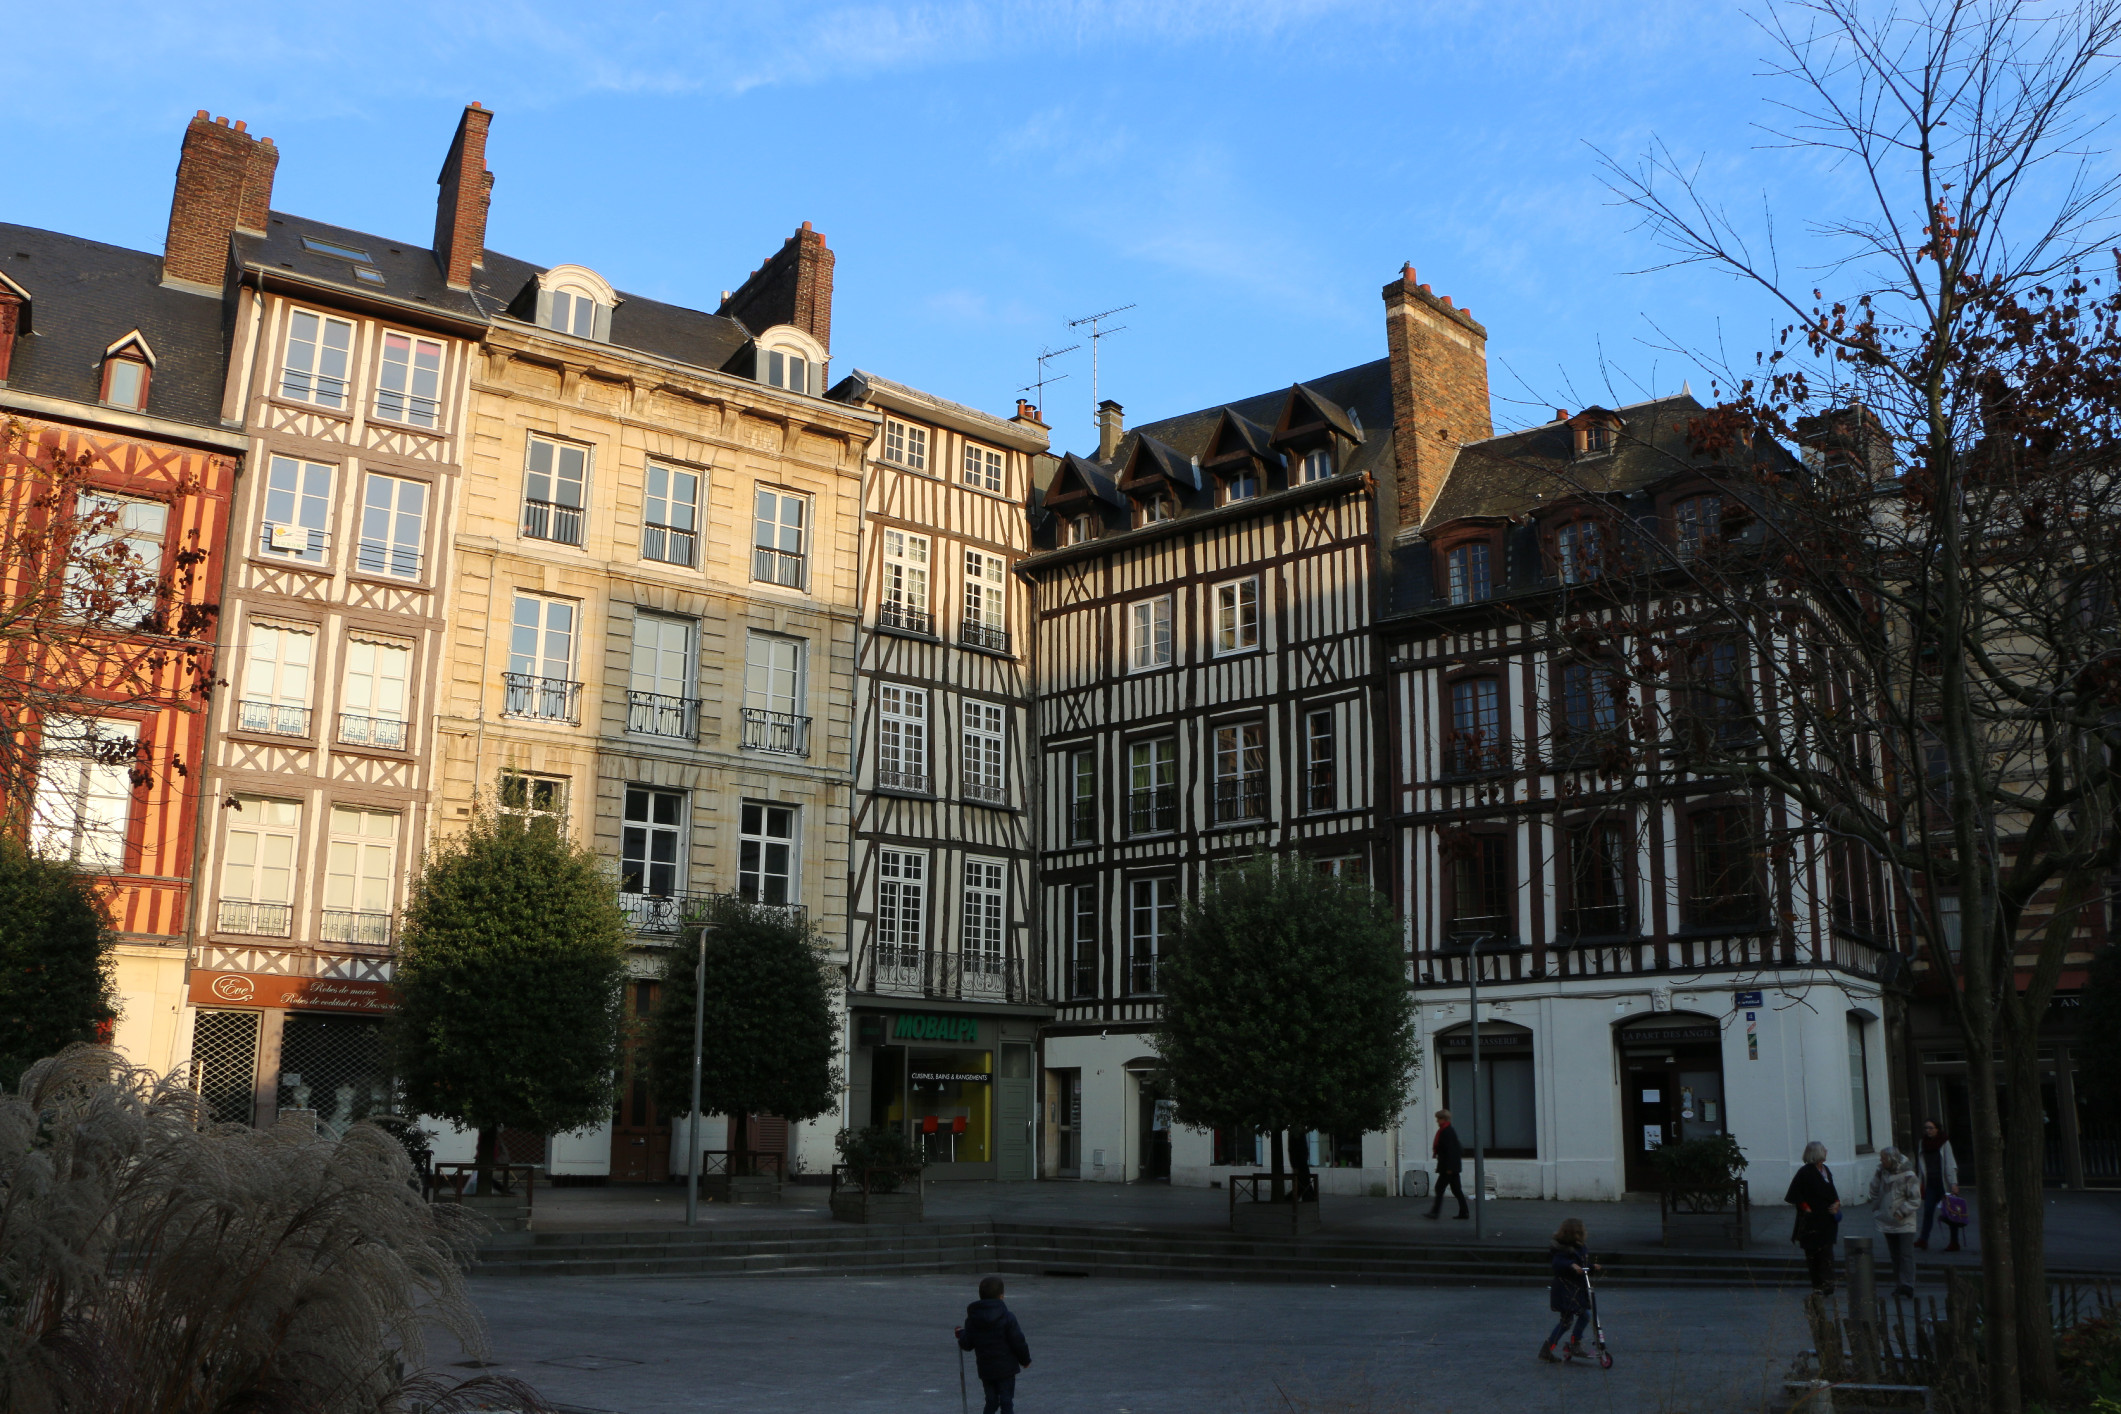 Hotel de bourgtheroulde street view for Hotels rouen